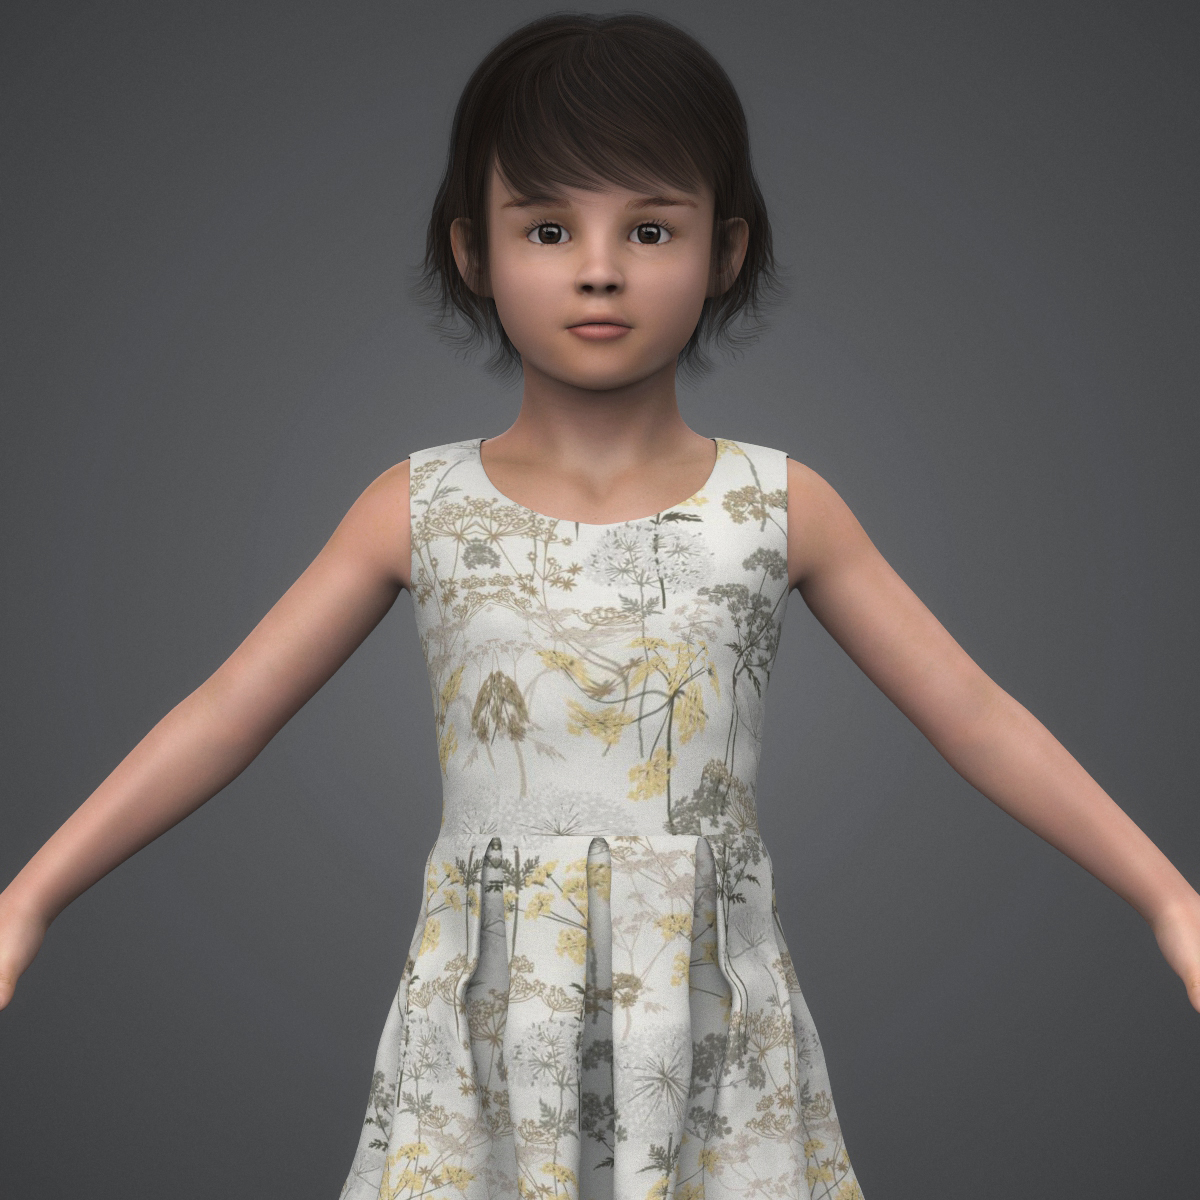 beautiful child girl 3d model max fbx c4d ma mb texture obj 252391